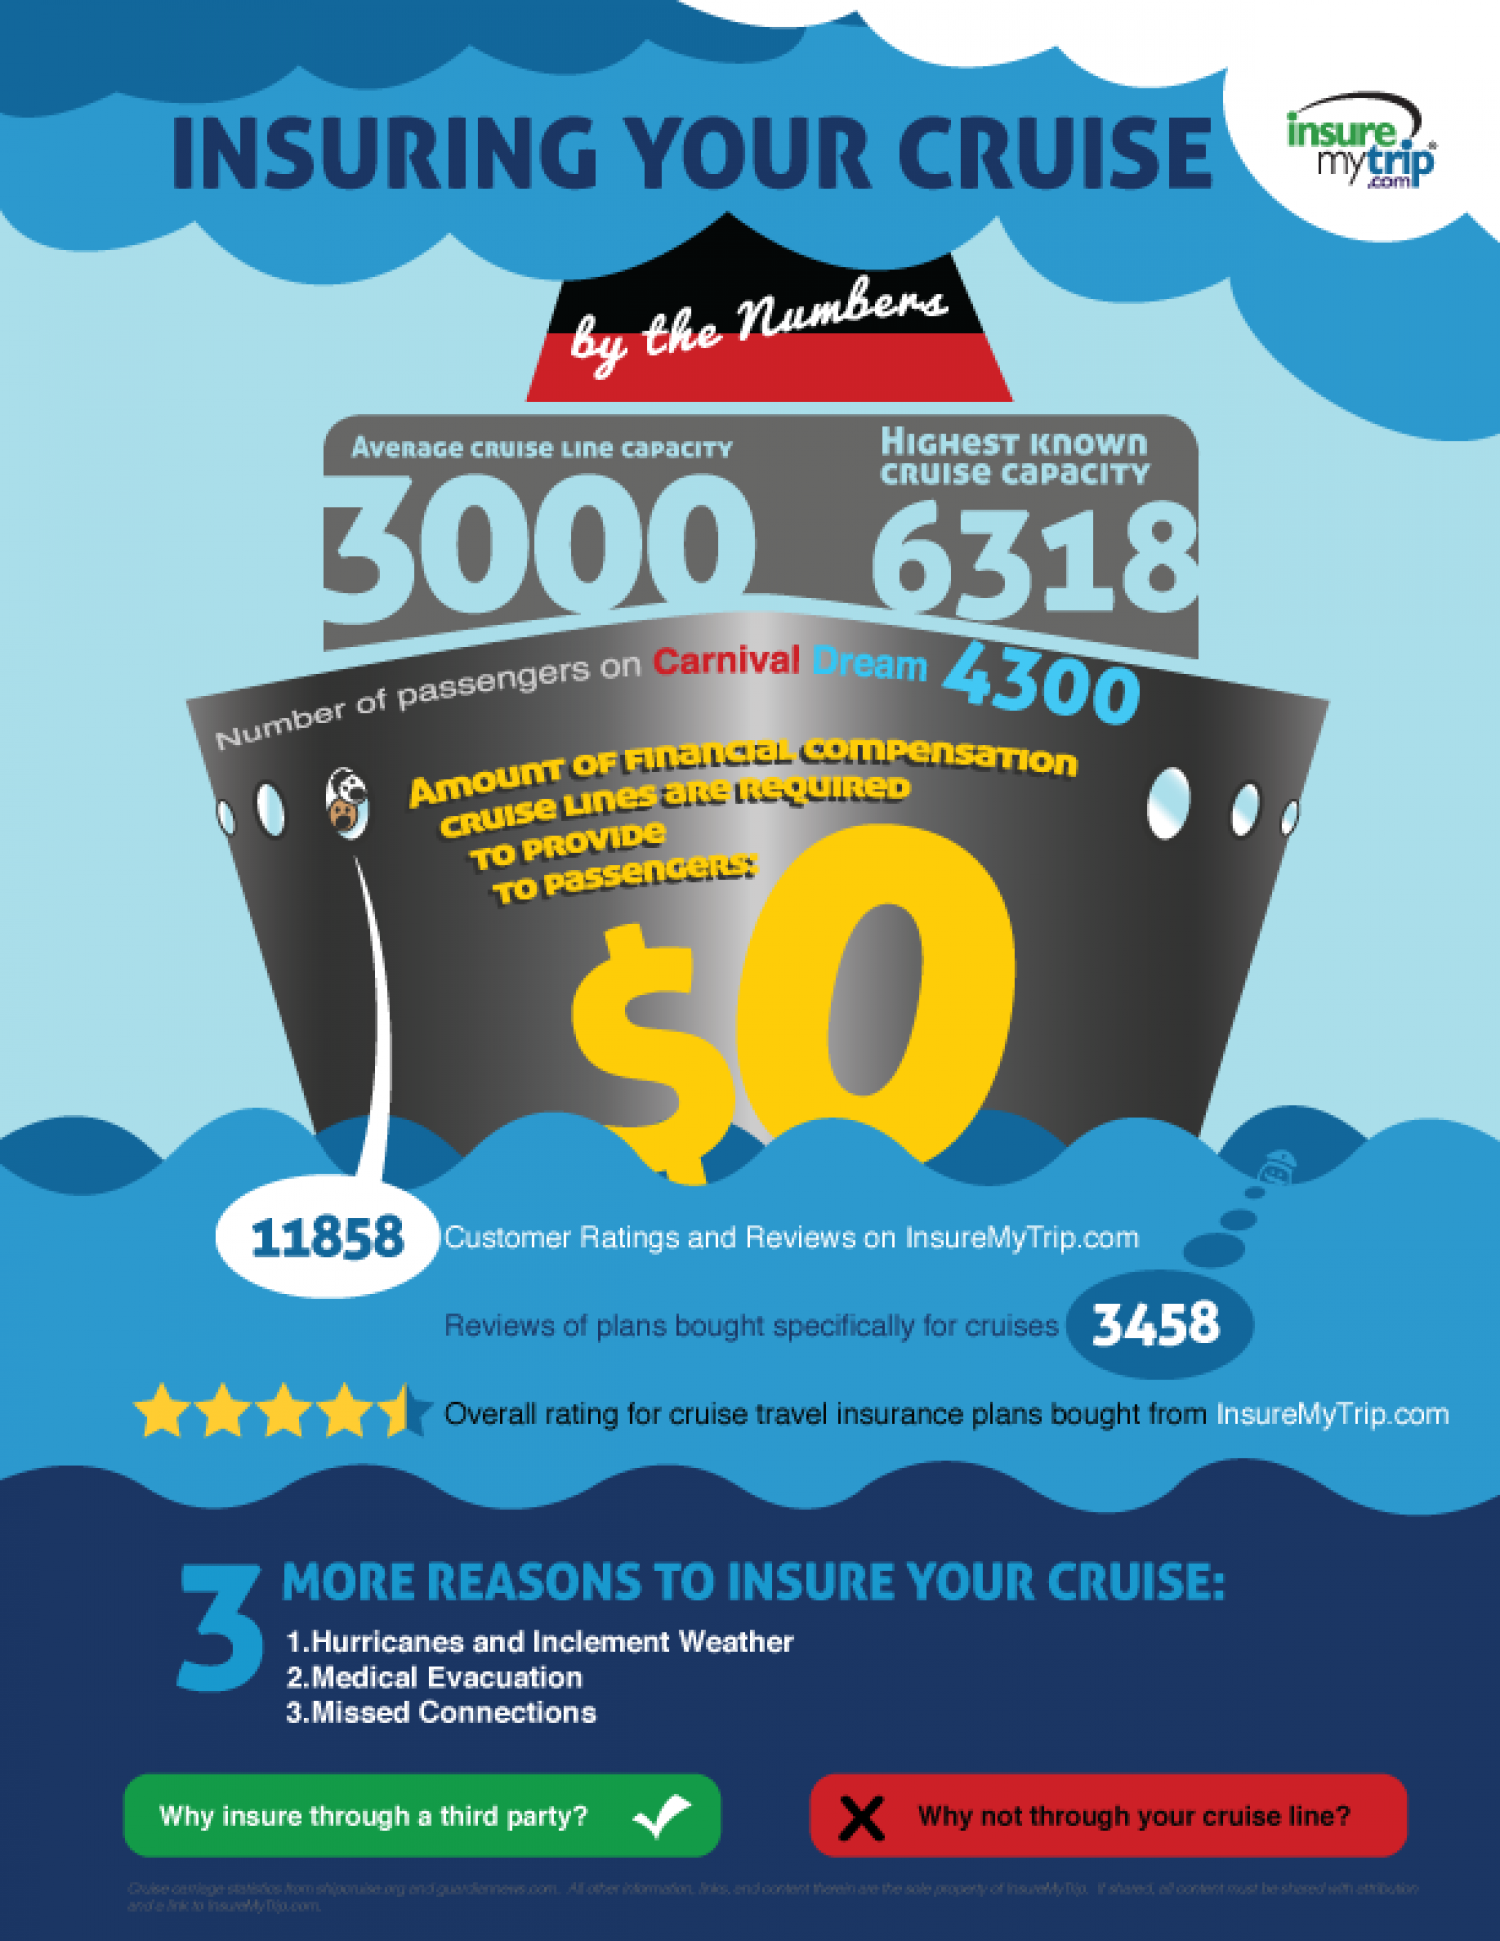 Insuring Your Cruise by the Numbers Infographic